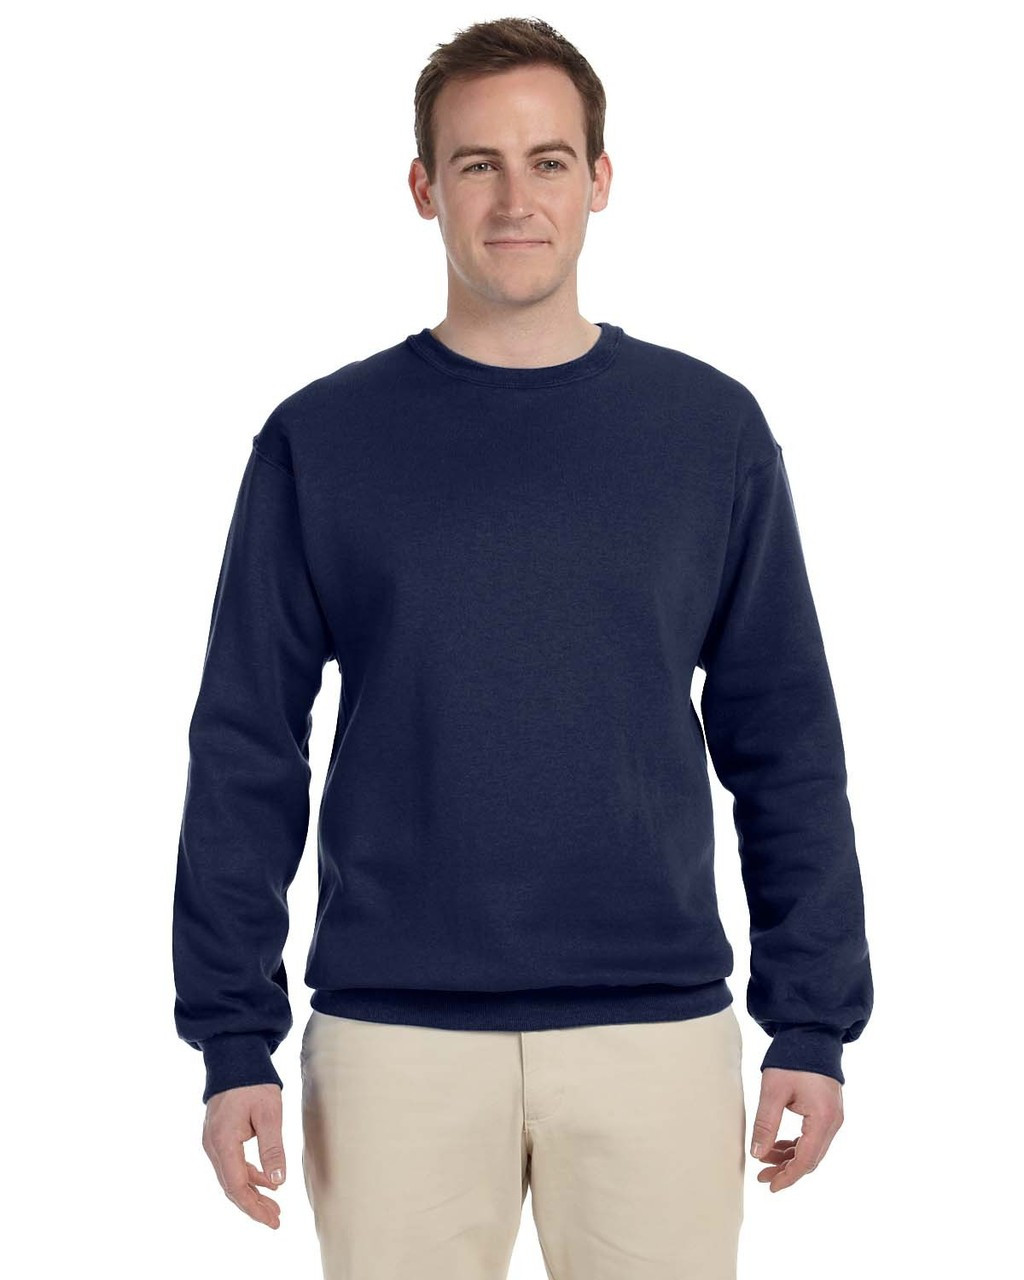 J. Navy - 82300 Fruit of the Loom Supercotton™ Fleece Crew Sweater | Blankclothing.ca